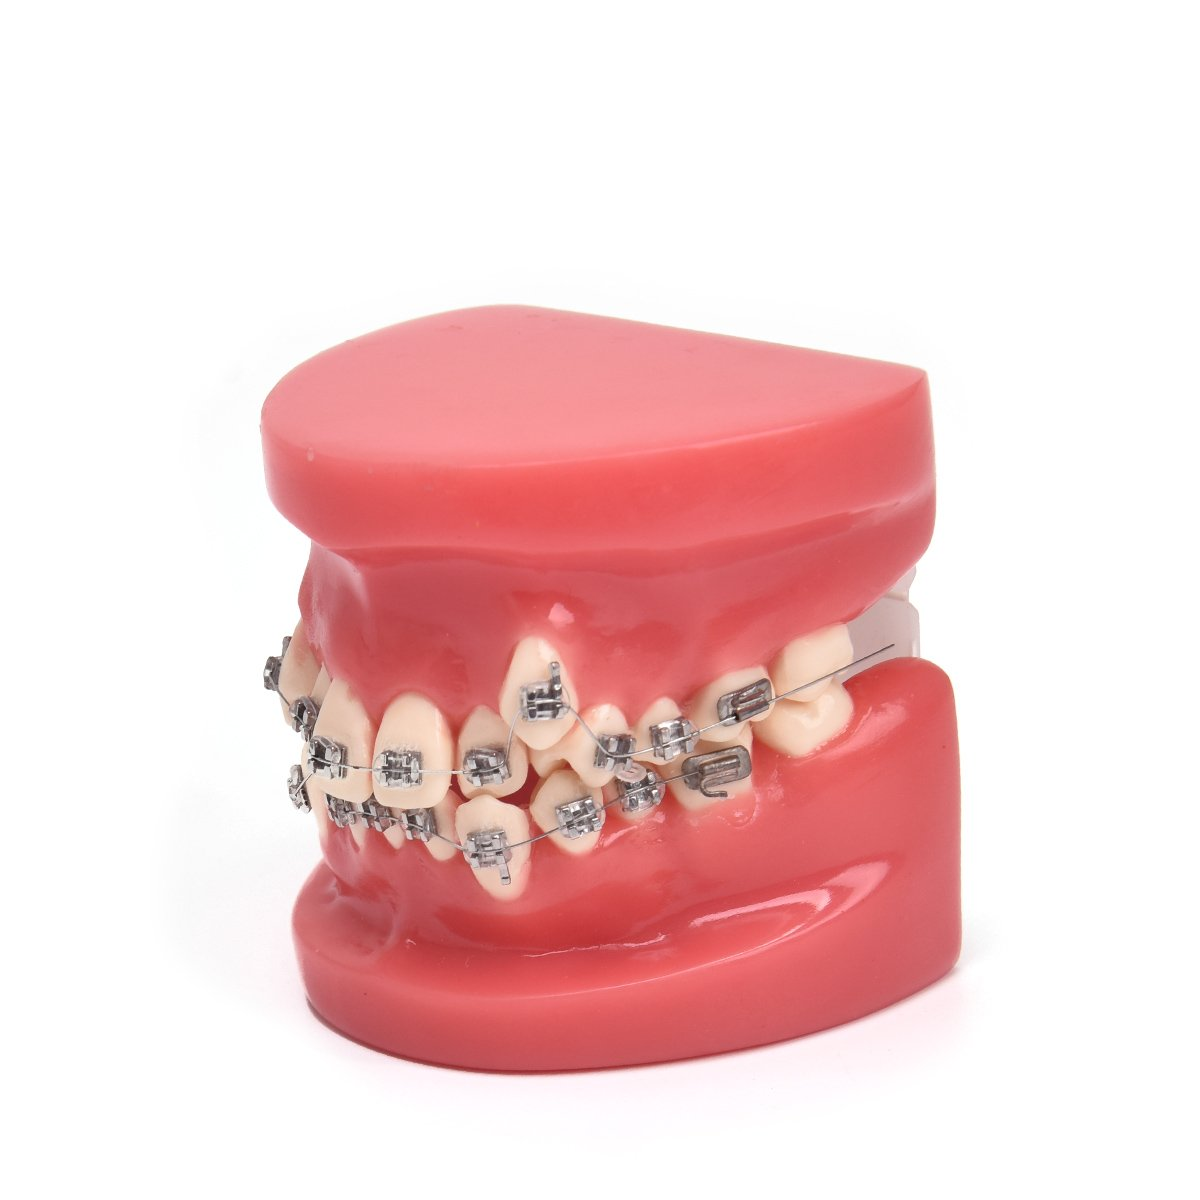 Annhua Dental Orthodontic Model Teeth Treatment Model with Metal Bracket Arch Wire Buccal Tube Ligature Ties